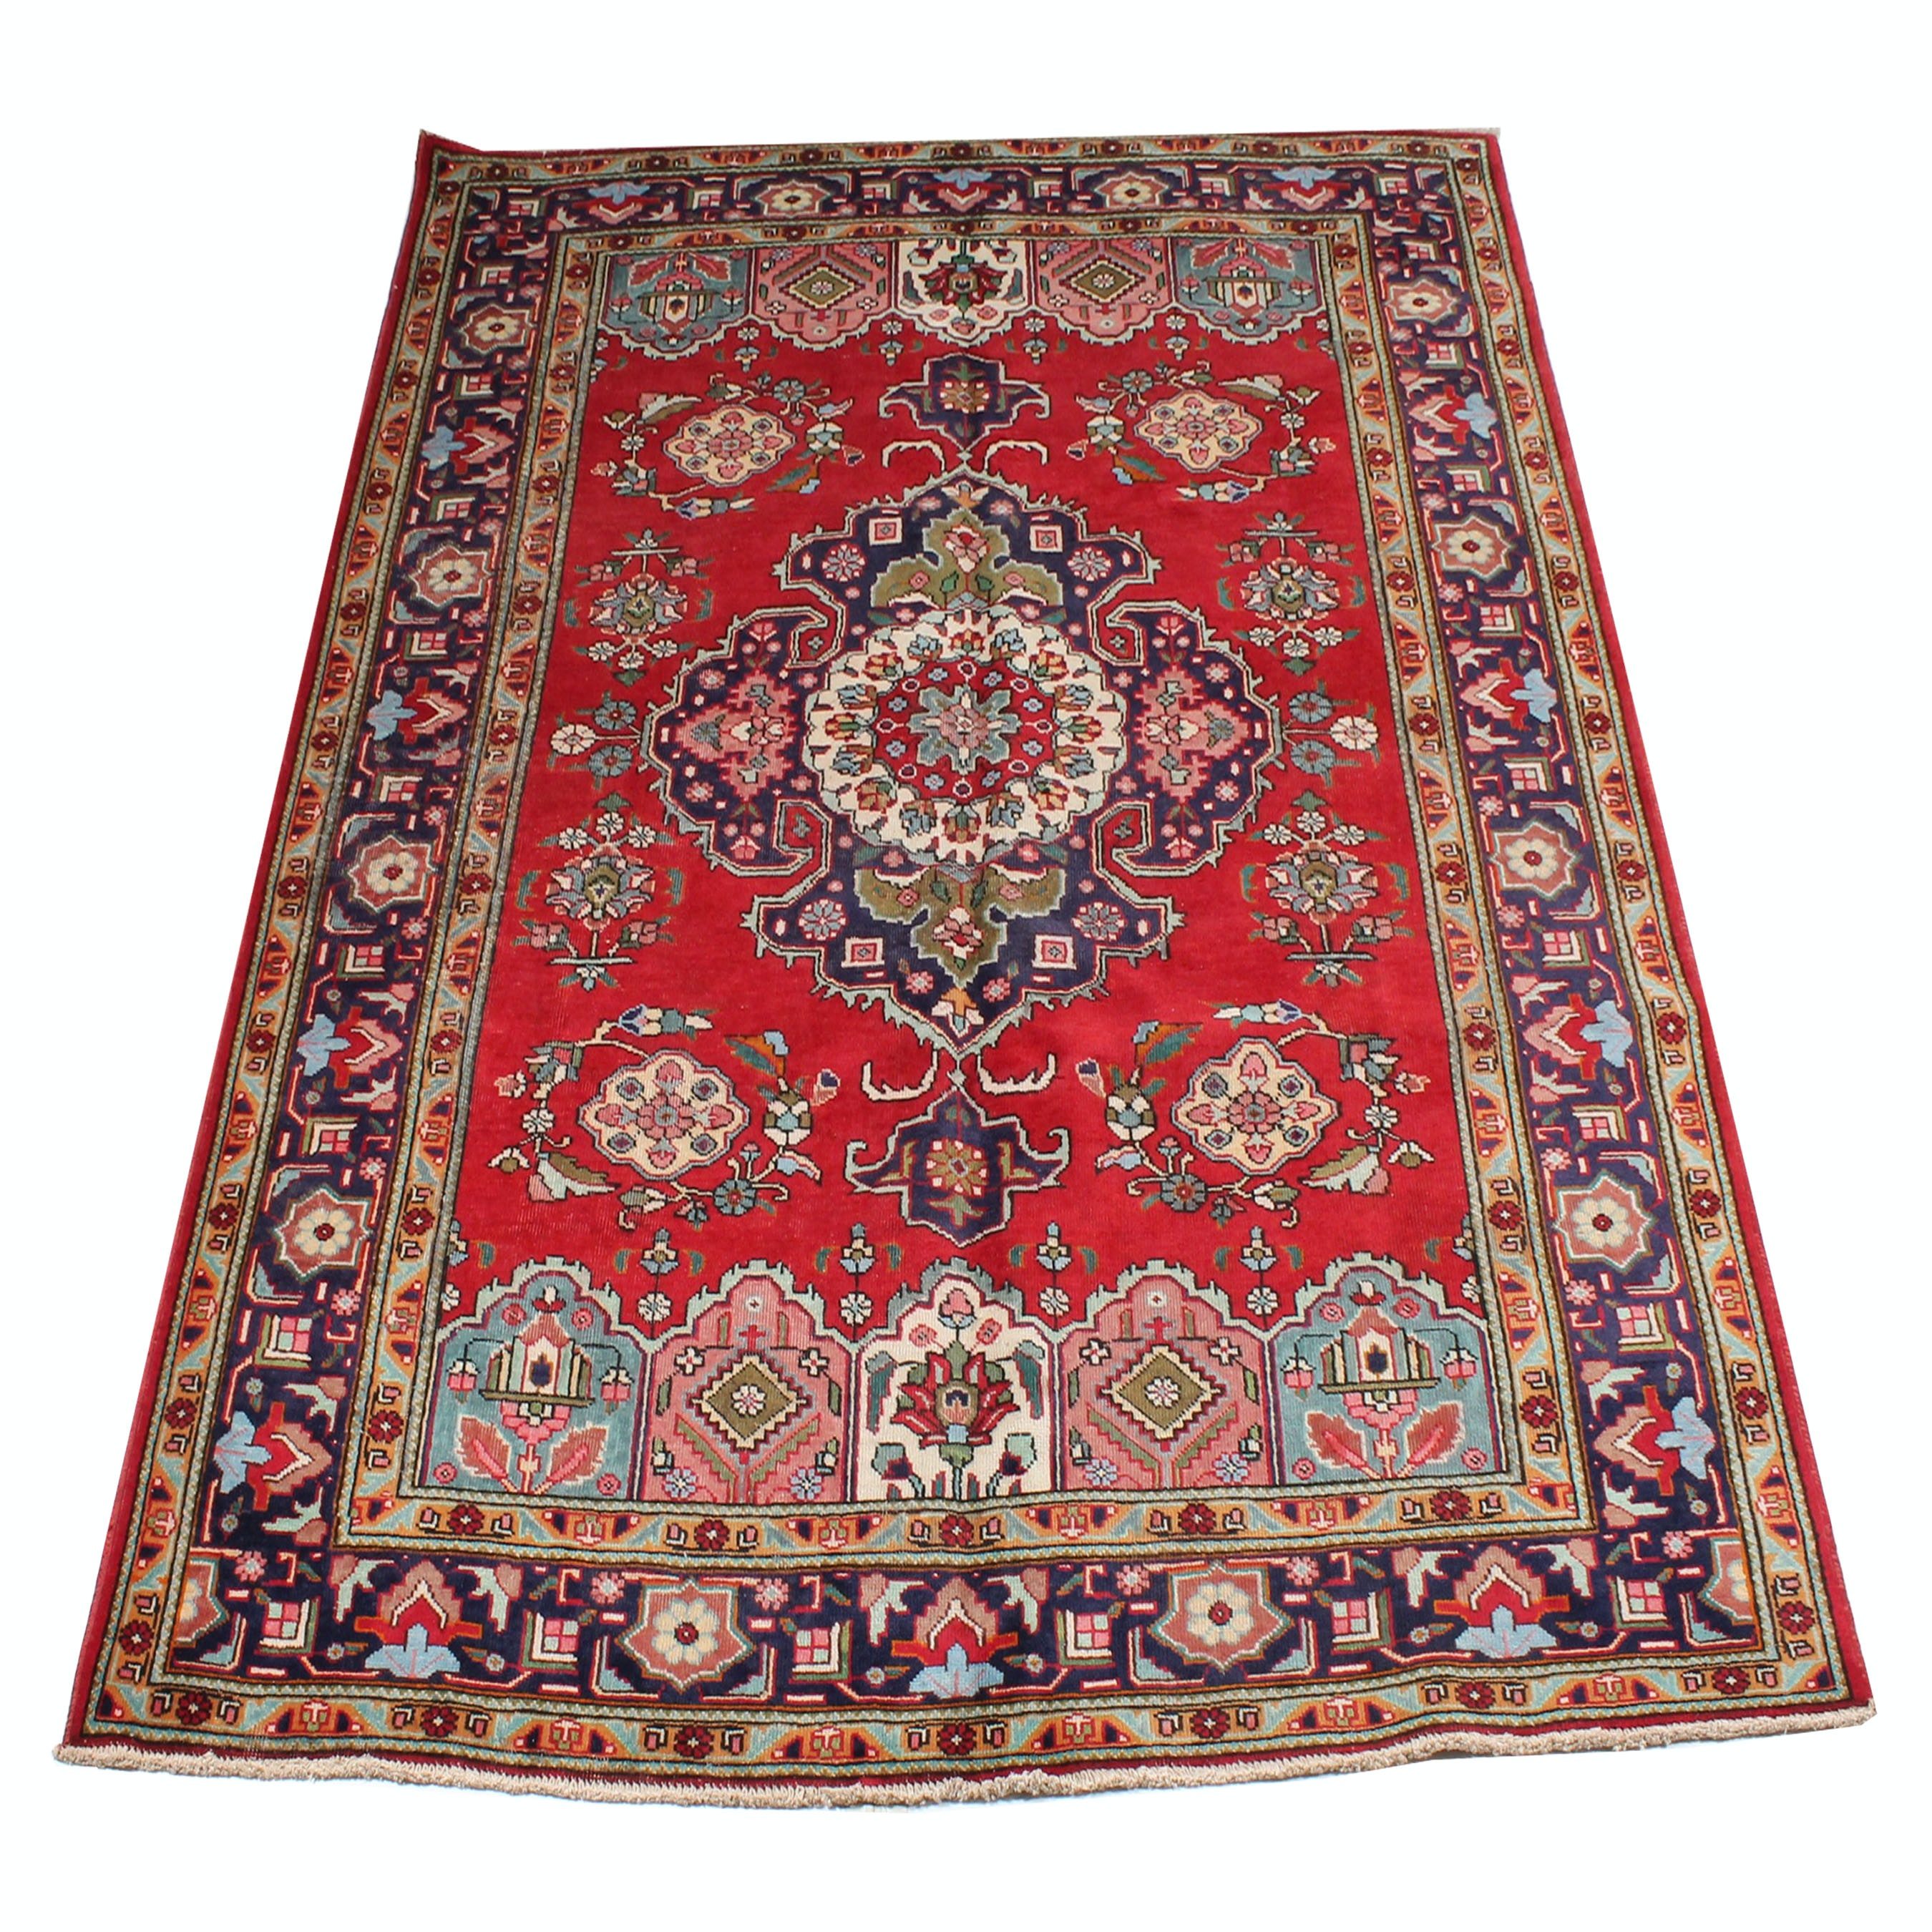 7' x 10' Vintage Hand-Knotted Persian Tabriz Room Size Rug